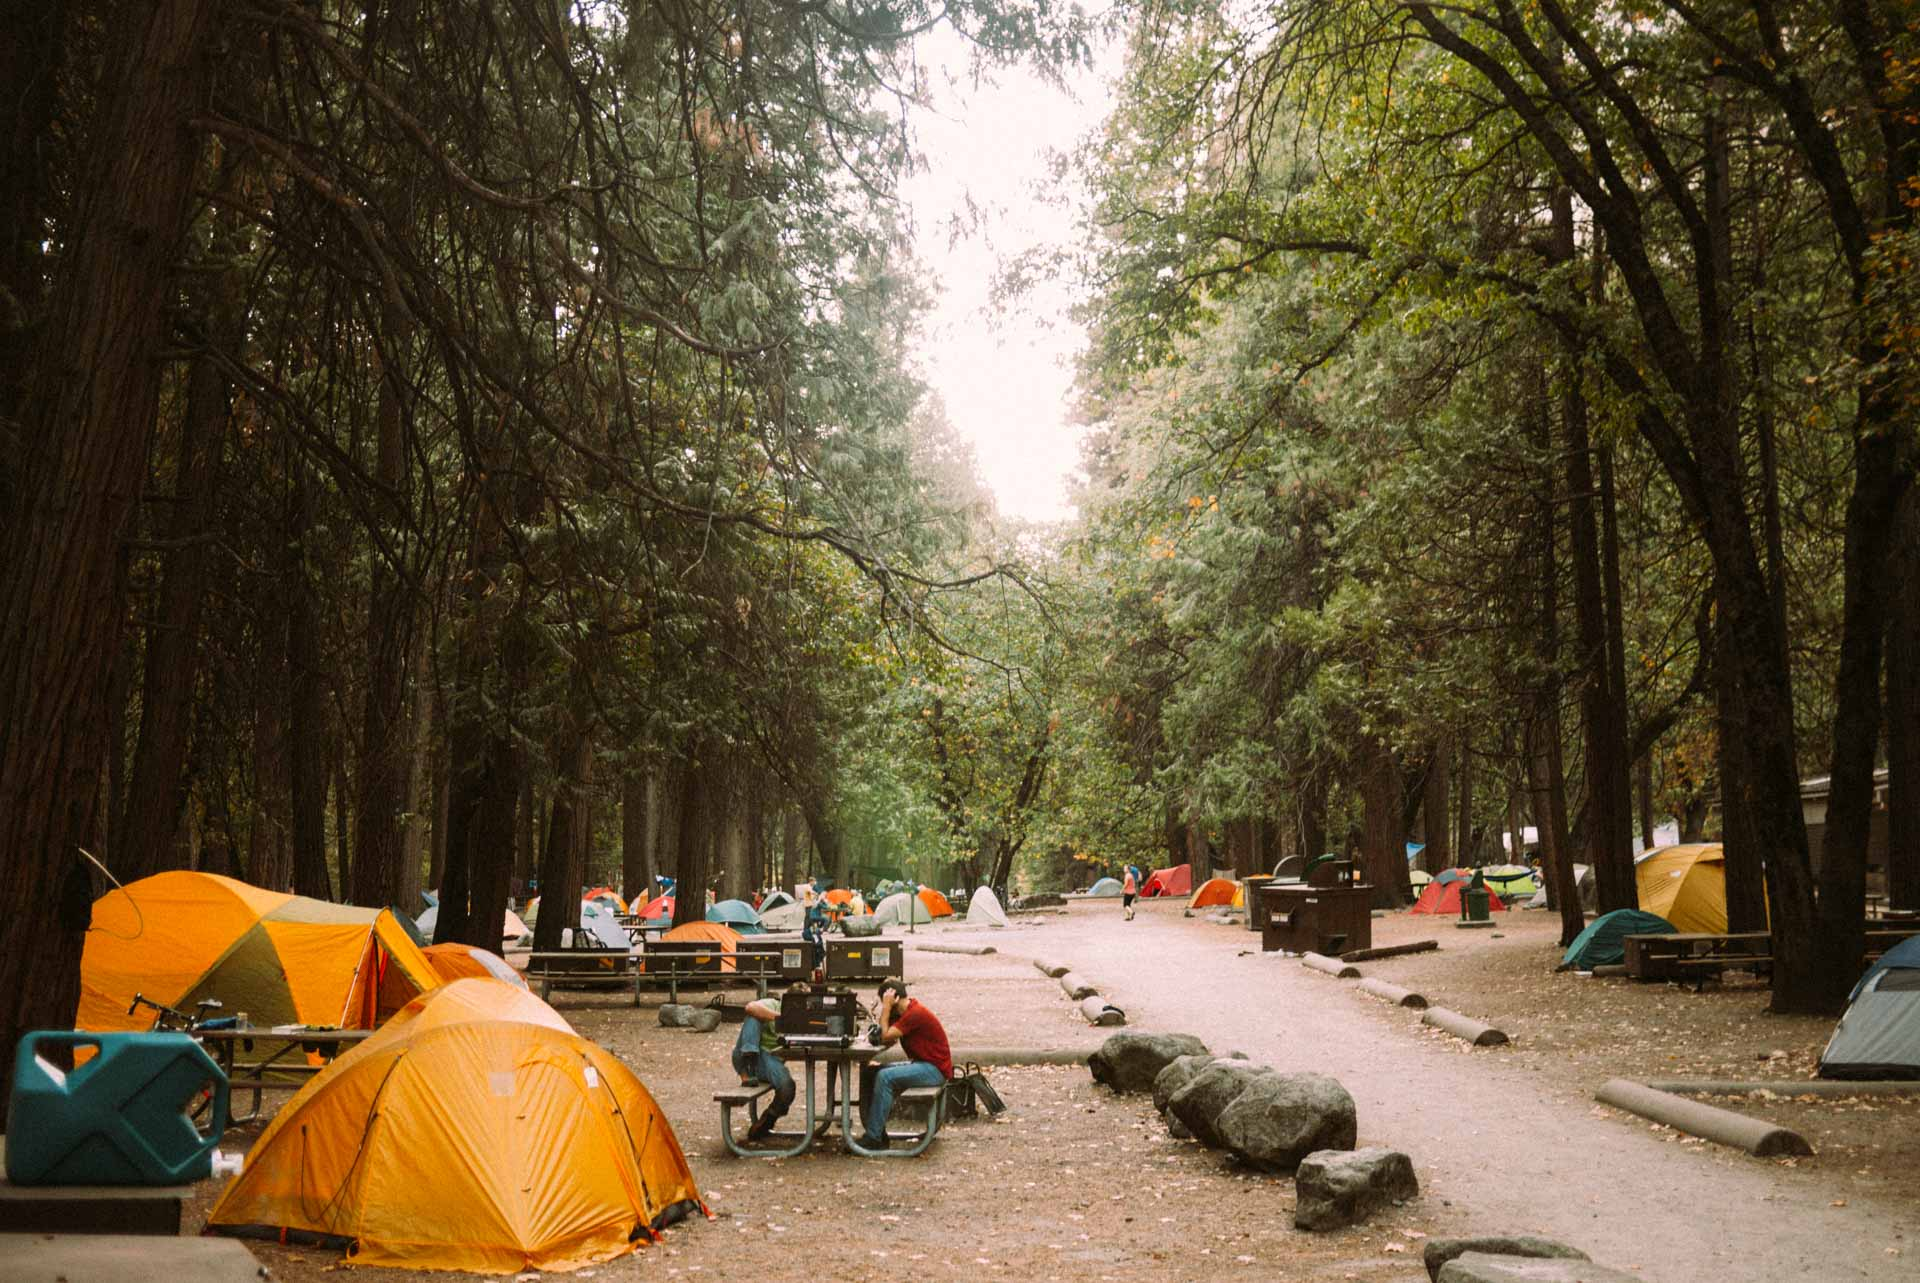 4 Camping A No Reservations Guide To Camping In Yosemite National Park